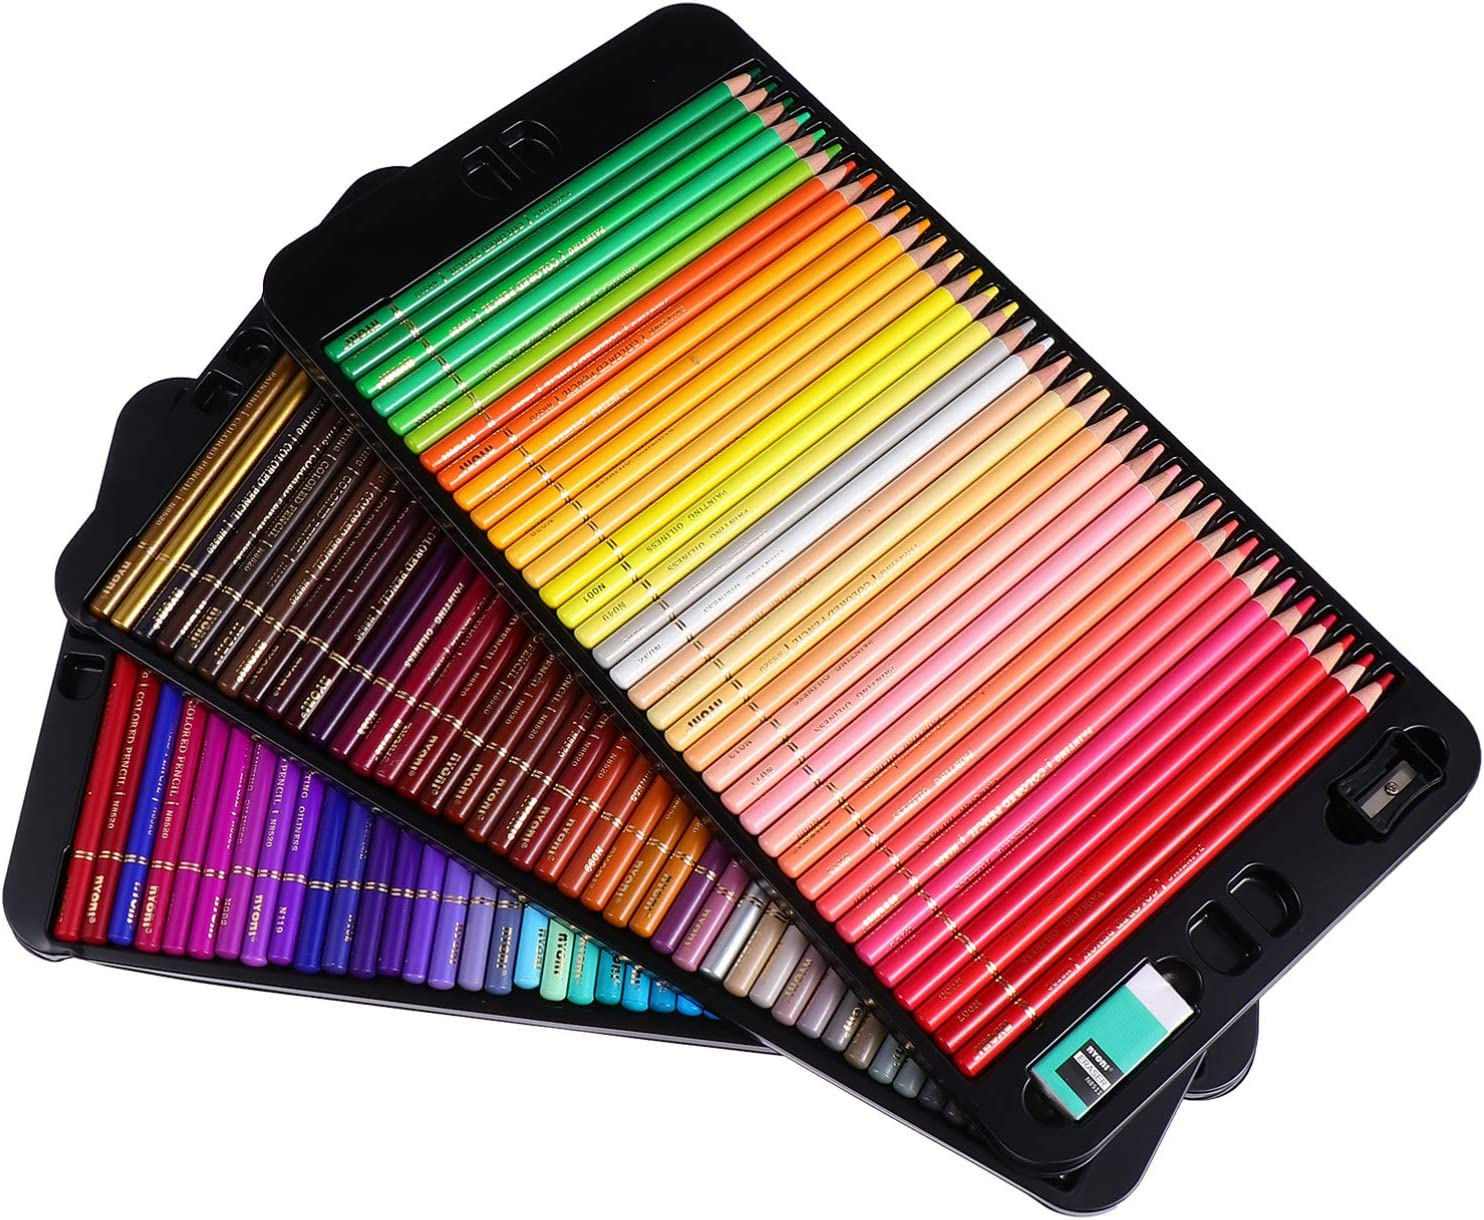 Max 80% OFF NUOBESTY Colored Paint Pencils Ranking TOP11 Set Pencil Sketching 120